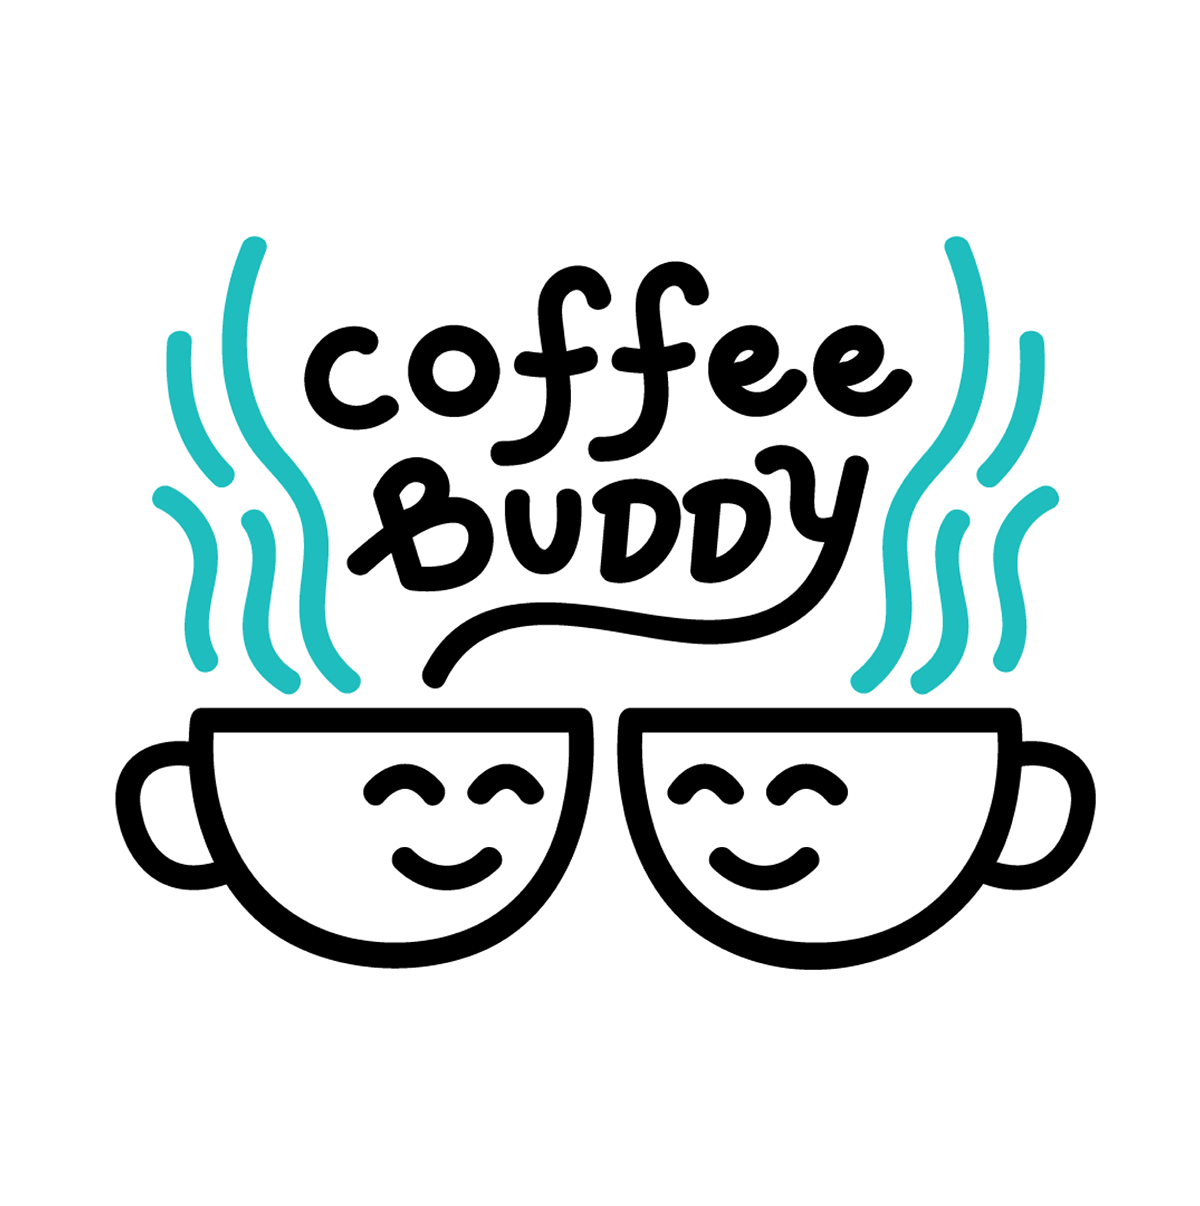 COFFEE BUDDY  Coffee Maker